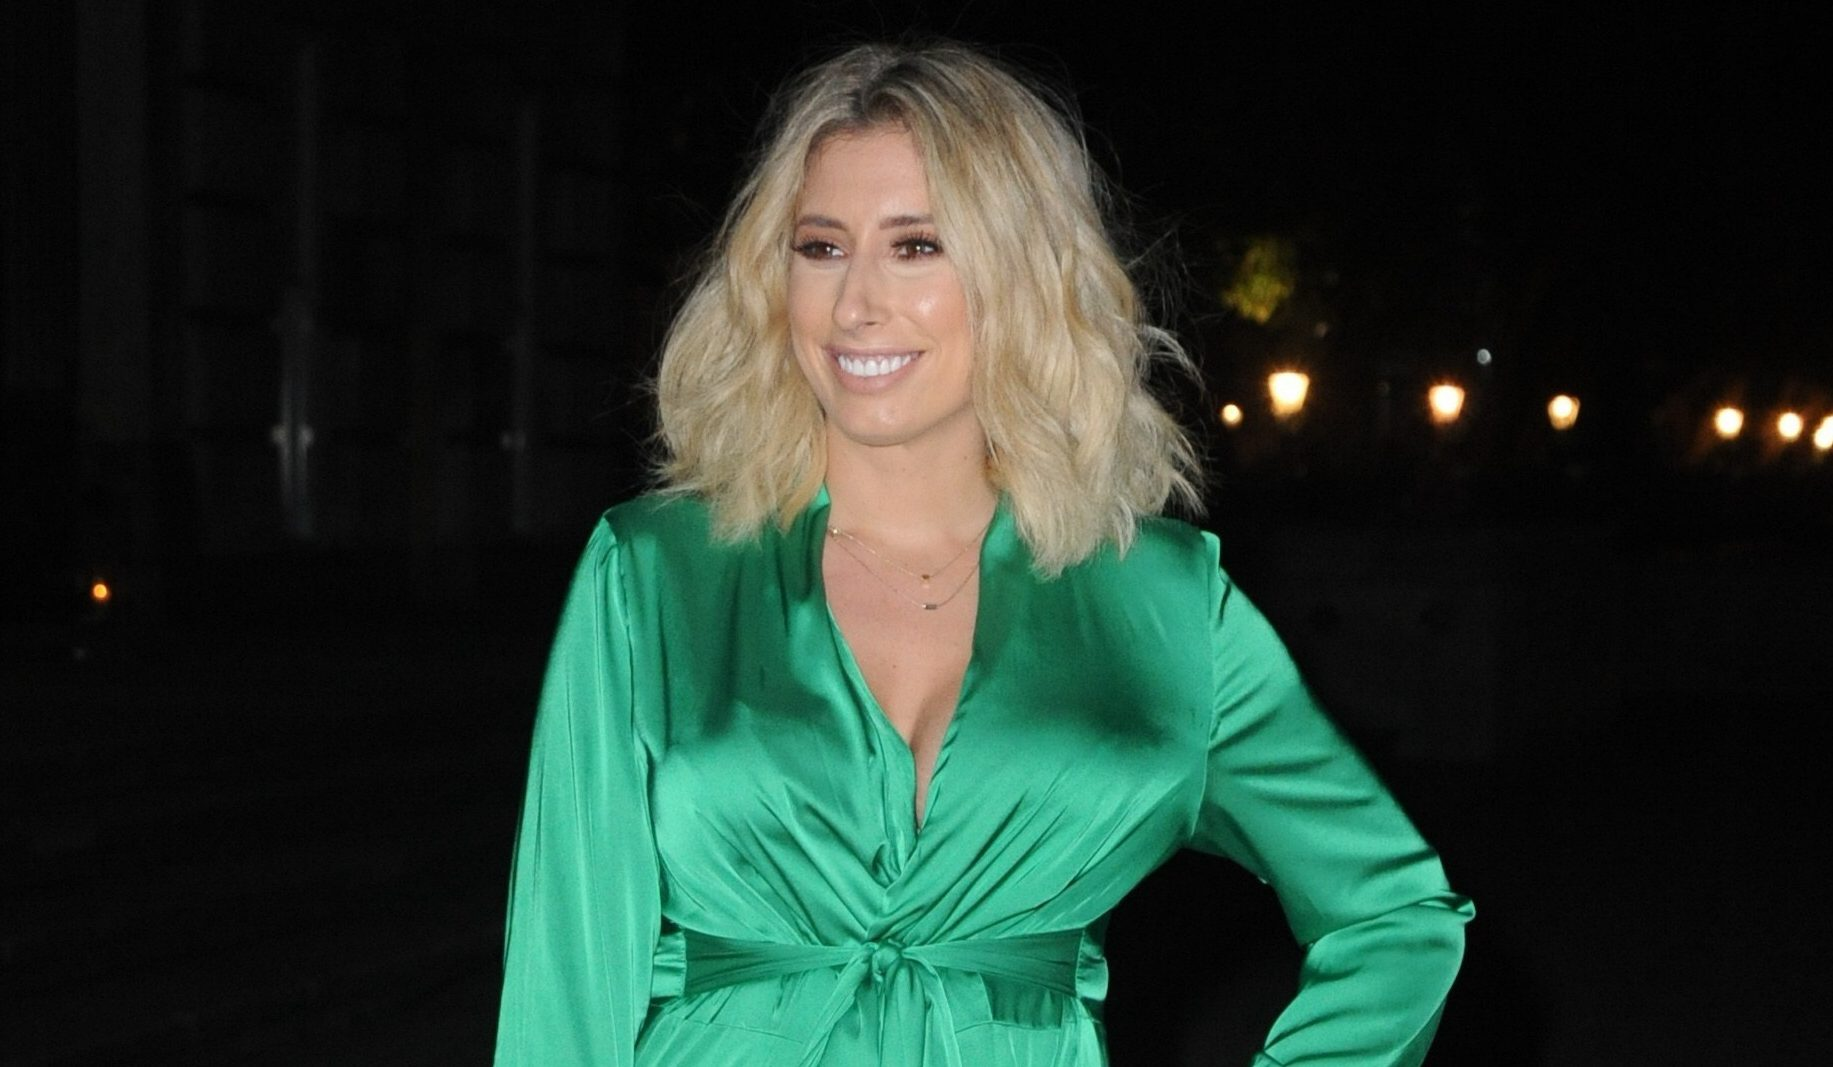 Stacey Solomon wows fans with her National Television Awards transformation